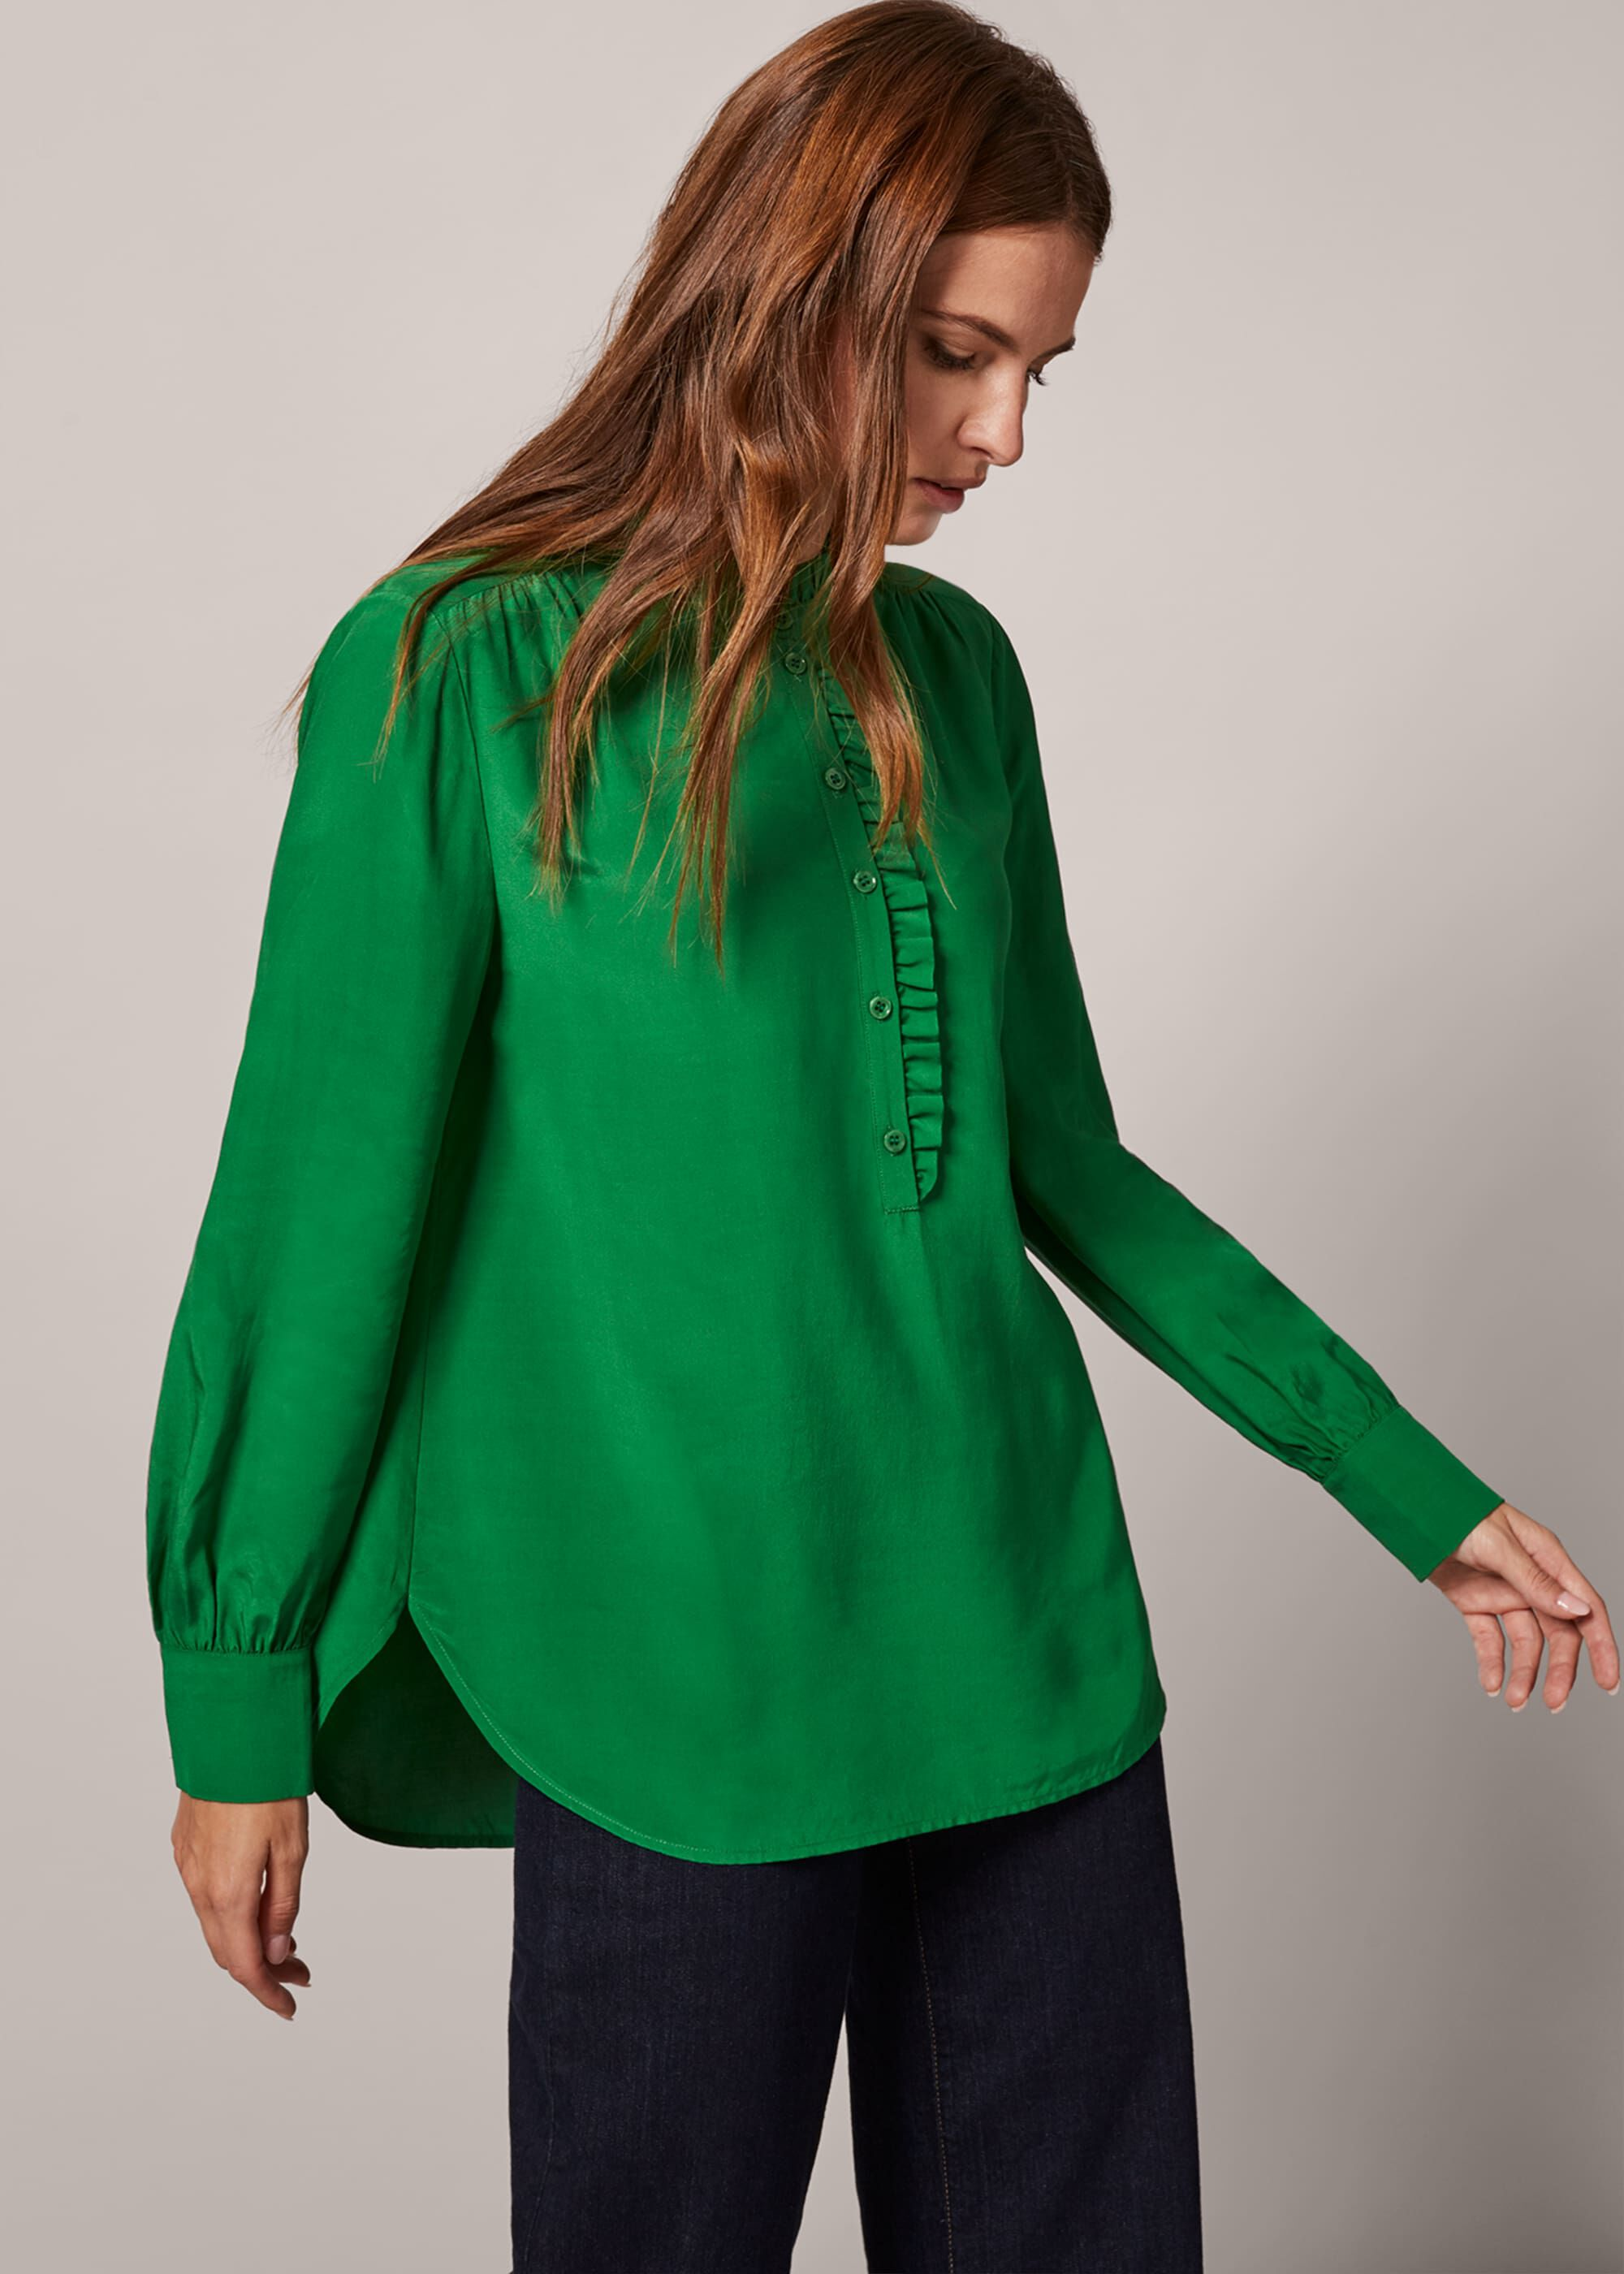 Phase Eight Loni Frill Blouse, Green, Blouse